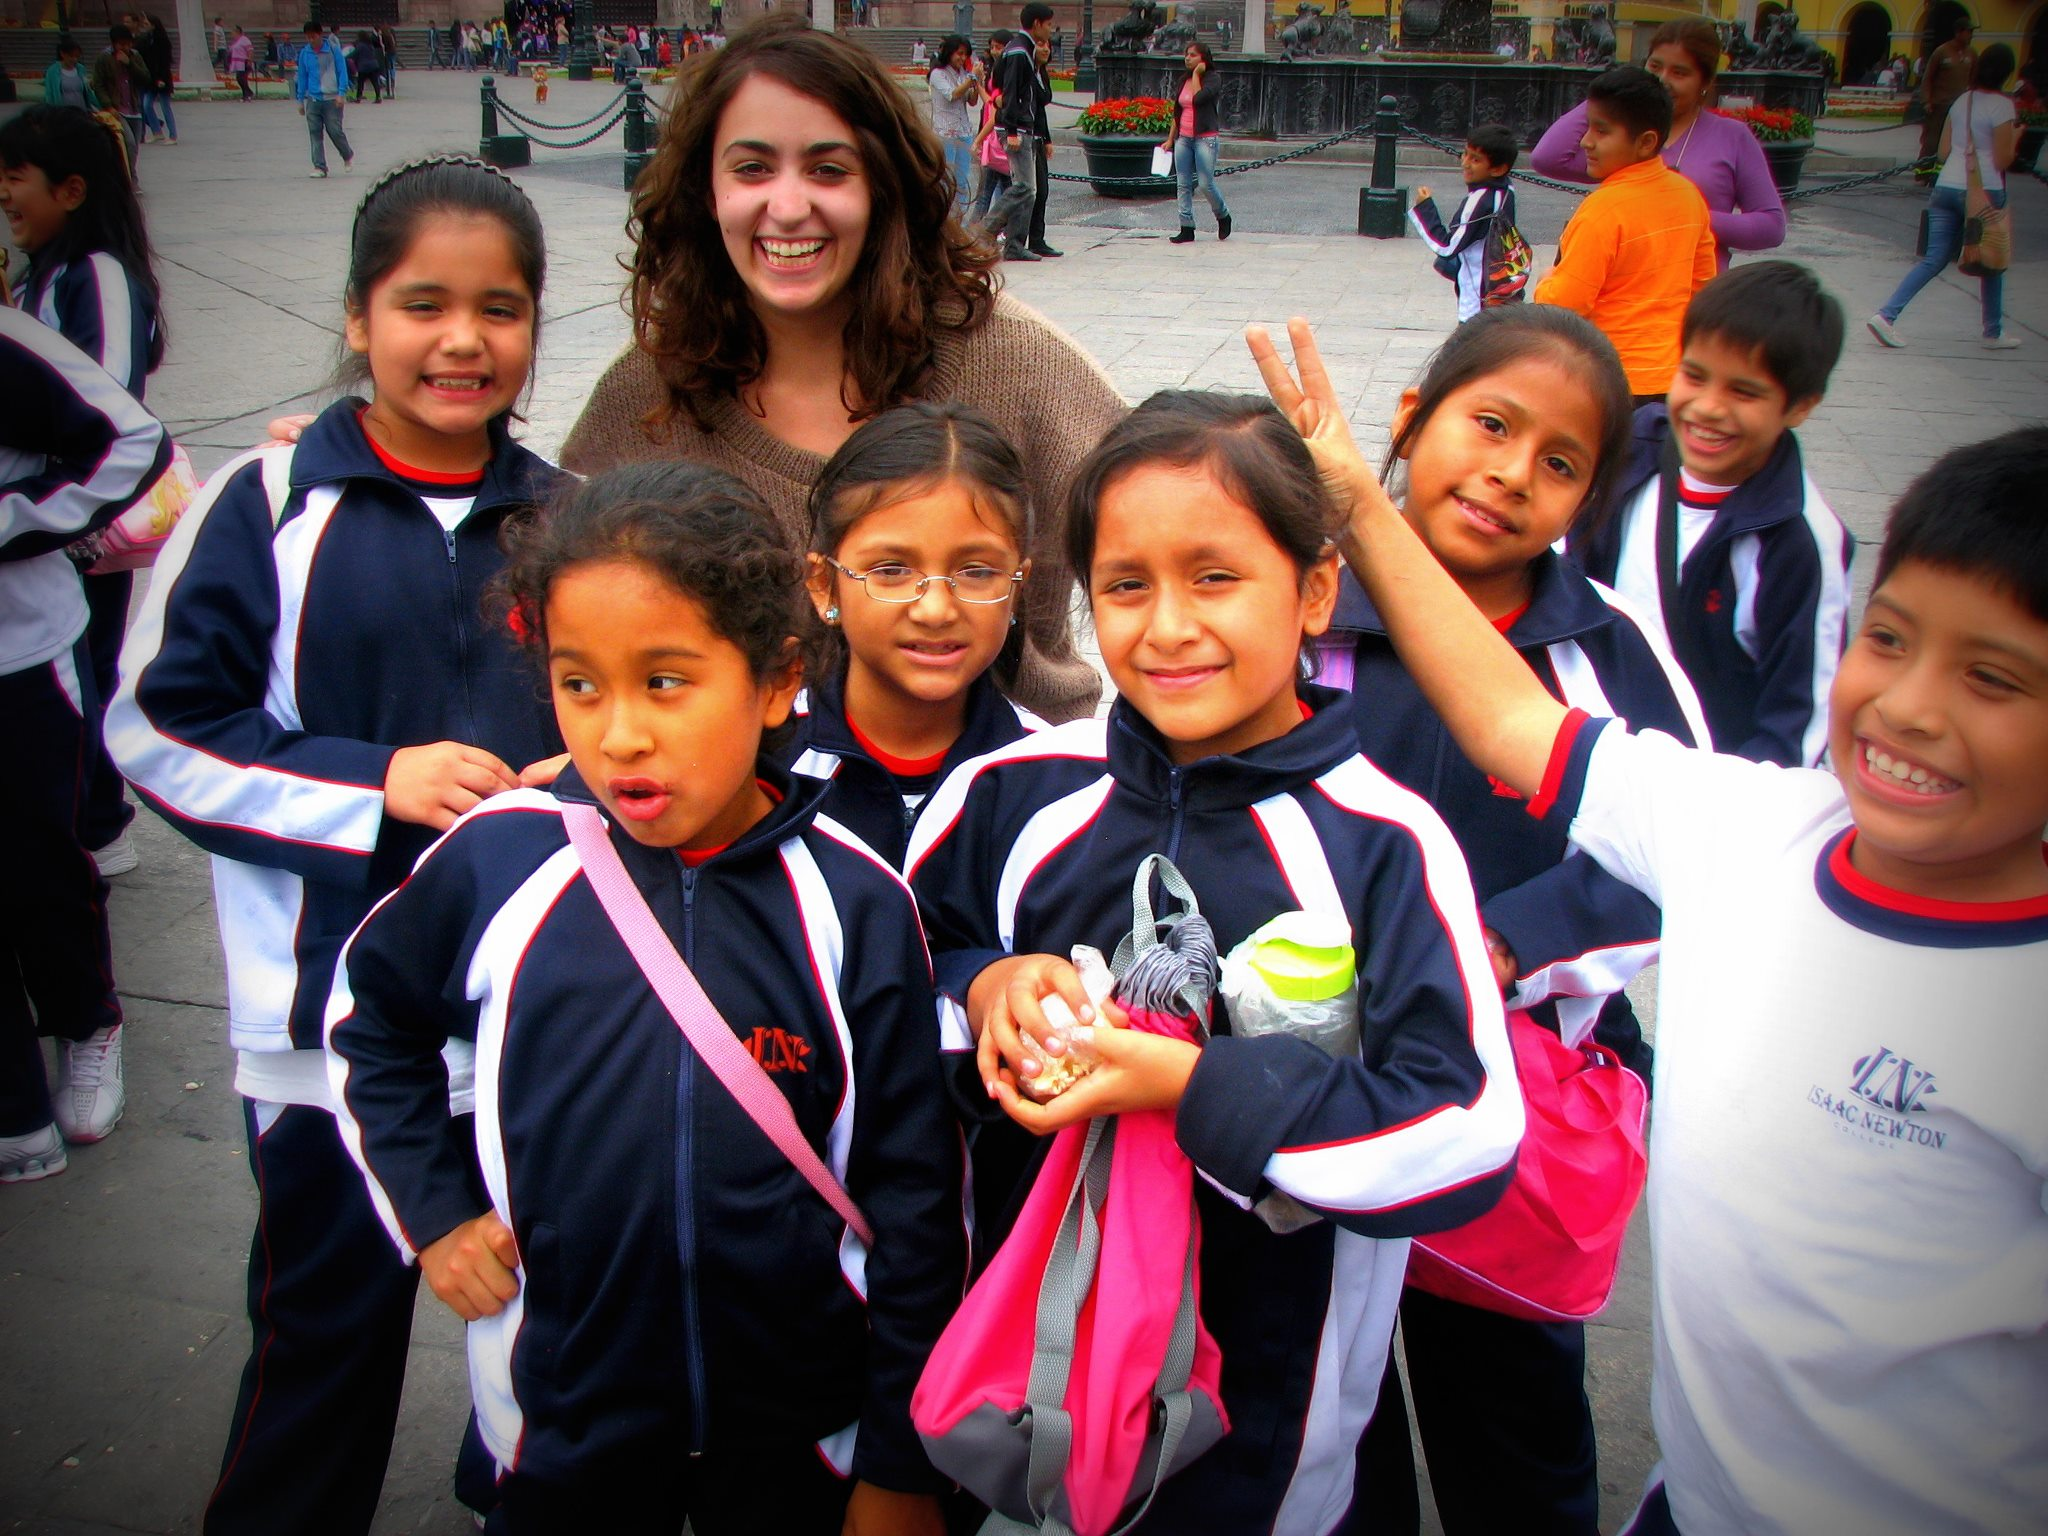 Alyson enjoying a Field day at a Peruvian school with students.